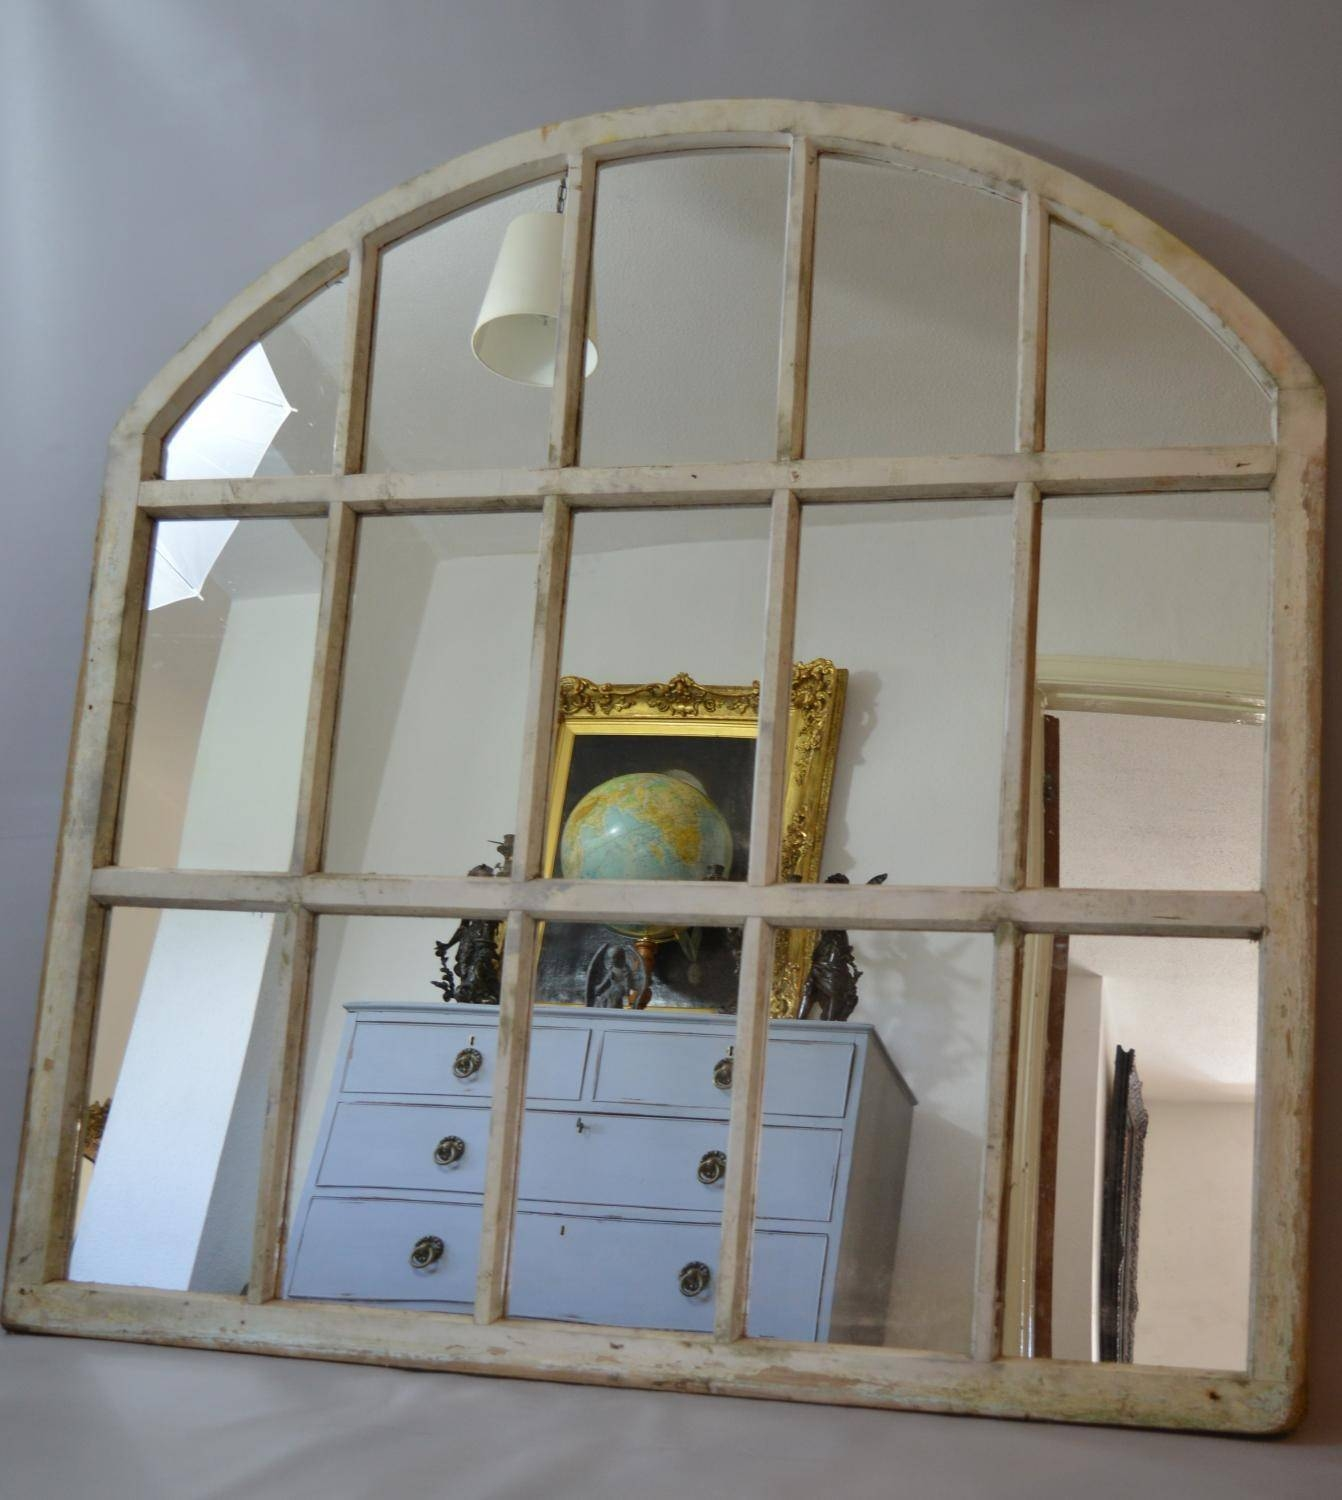 Exellent Arched Window Frame Gothic Arch 415 Inside Design with regard to Arched Window Mirrors (Image 12 of 25)